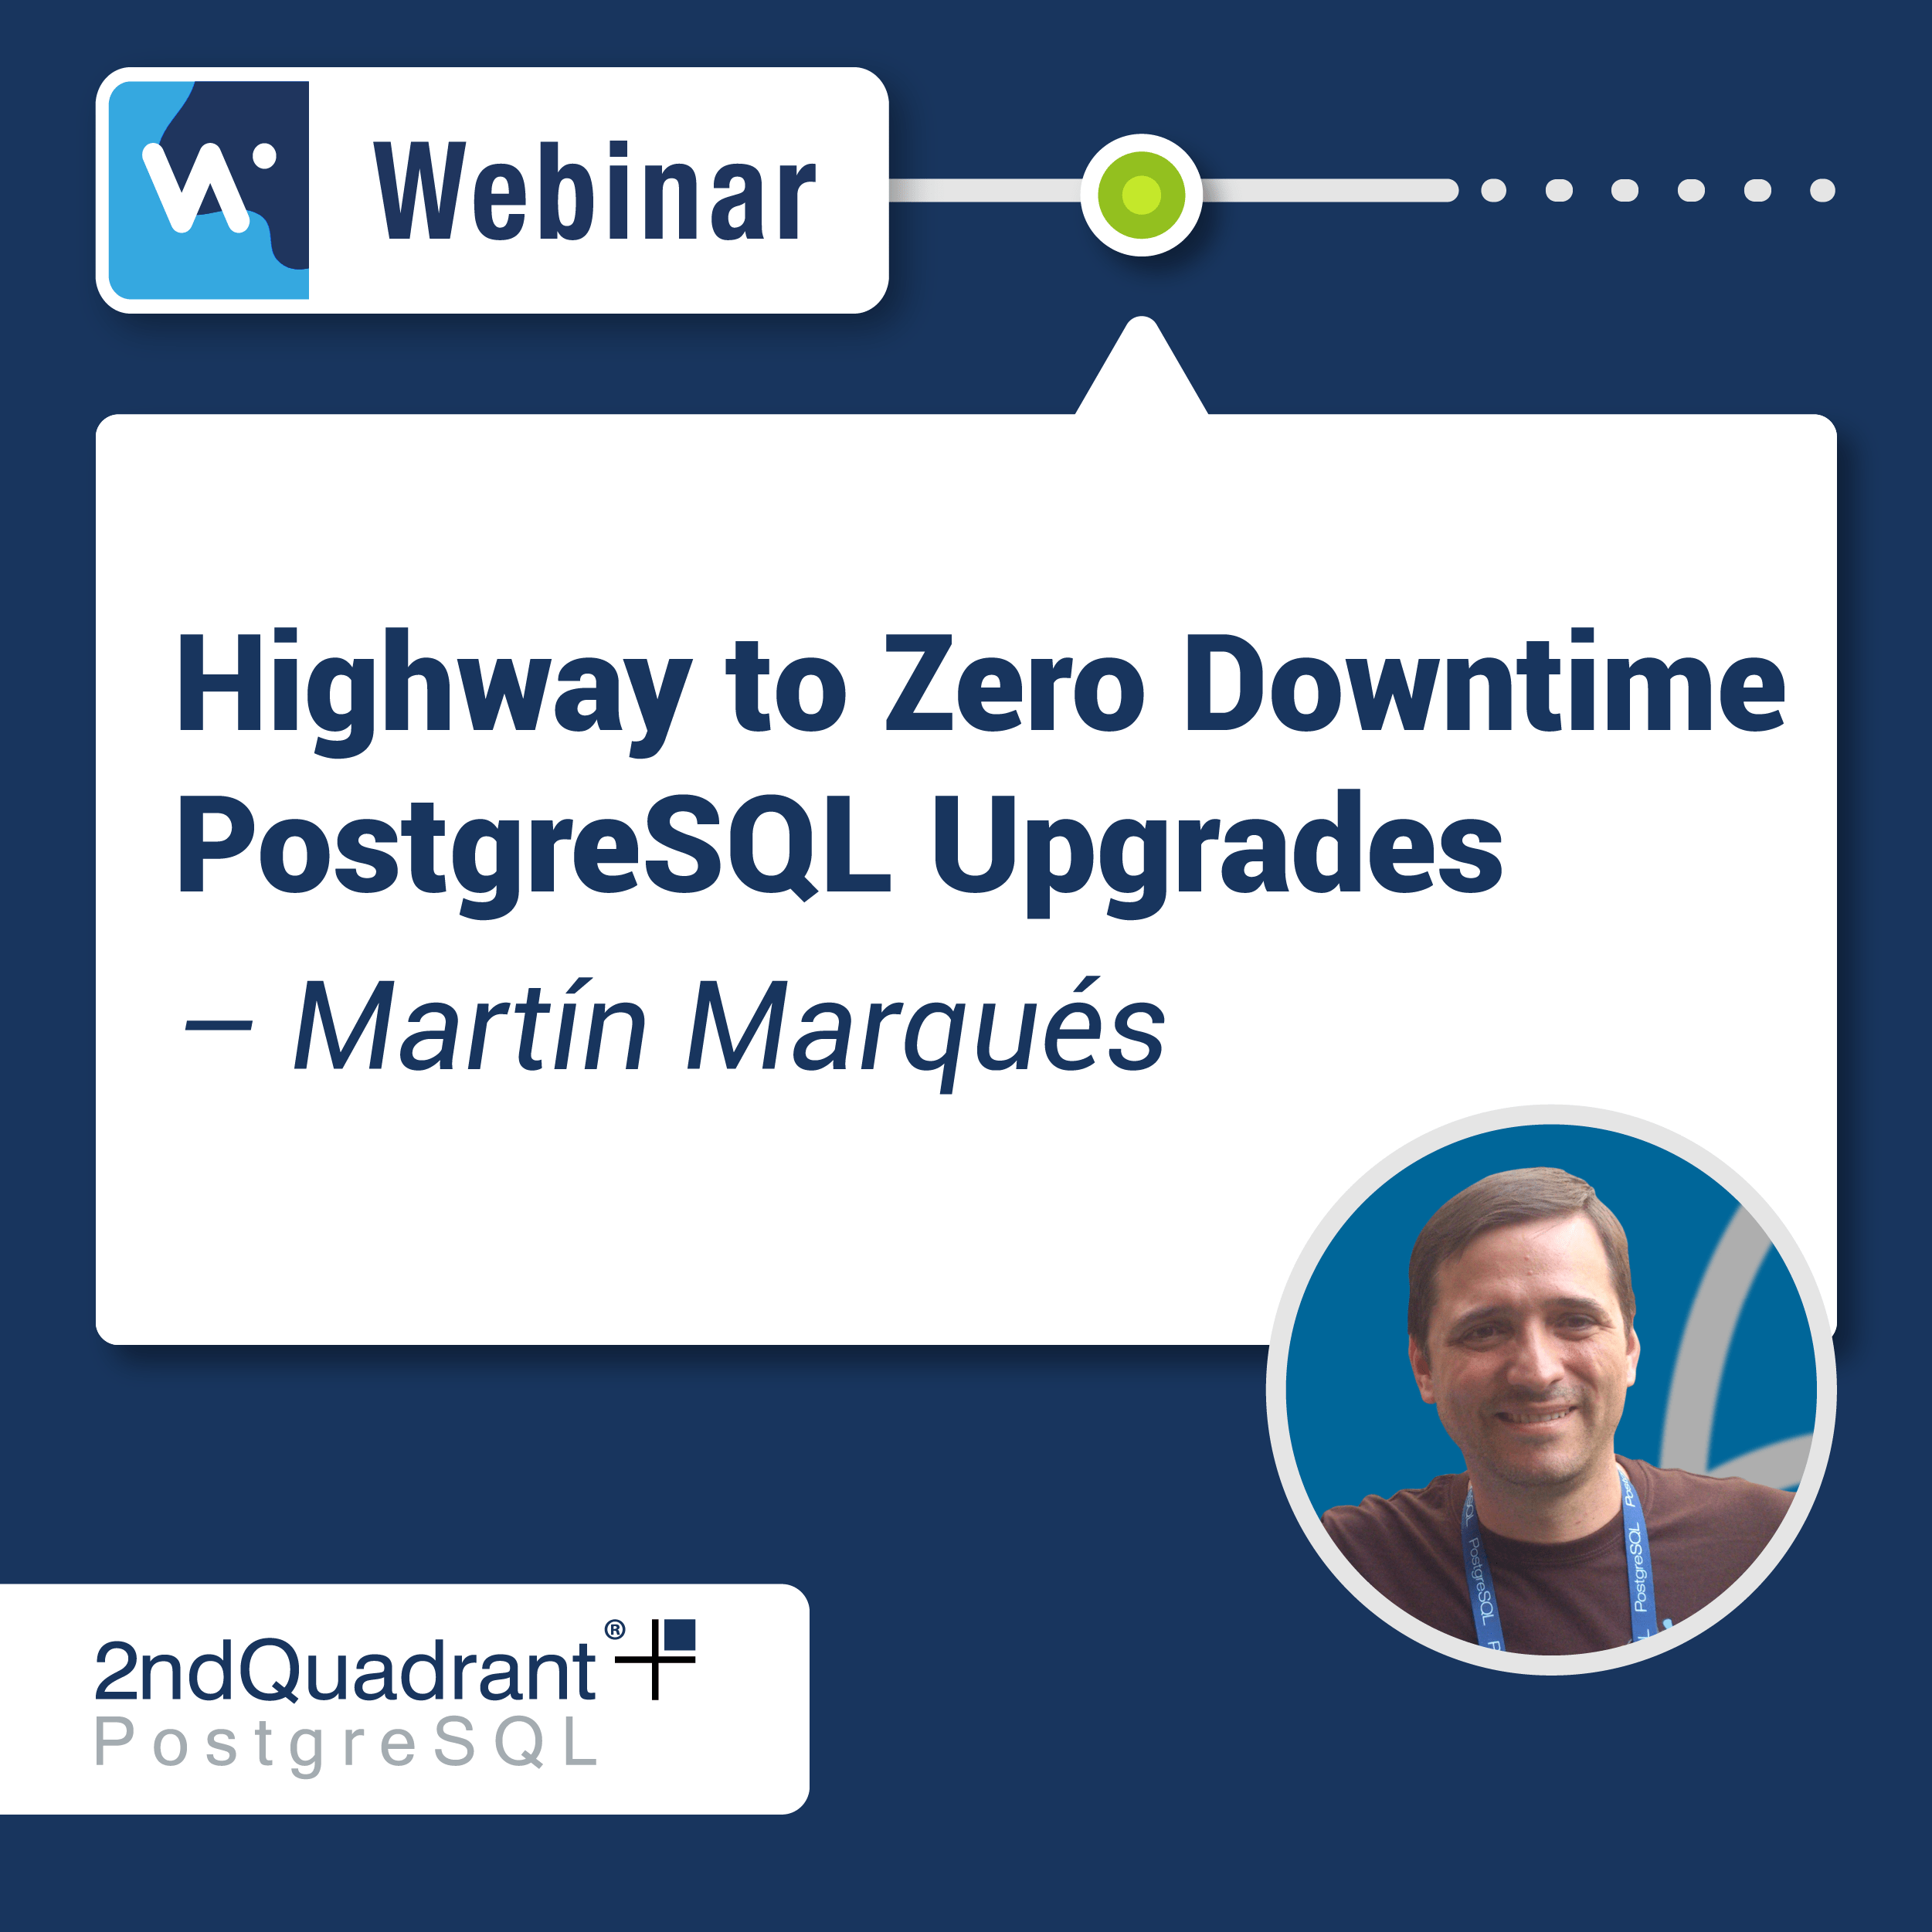 Highway to Zero Downtime PostgreSQL Upgrades